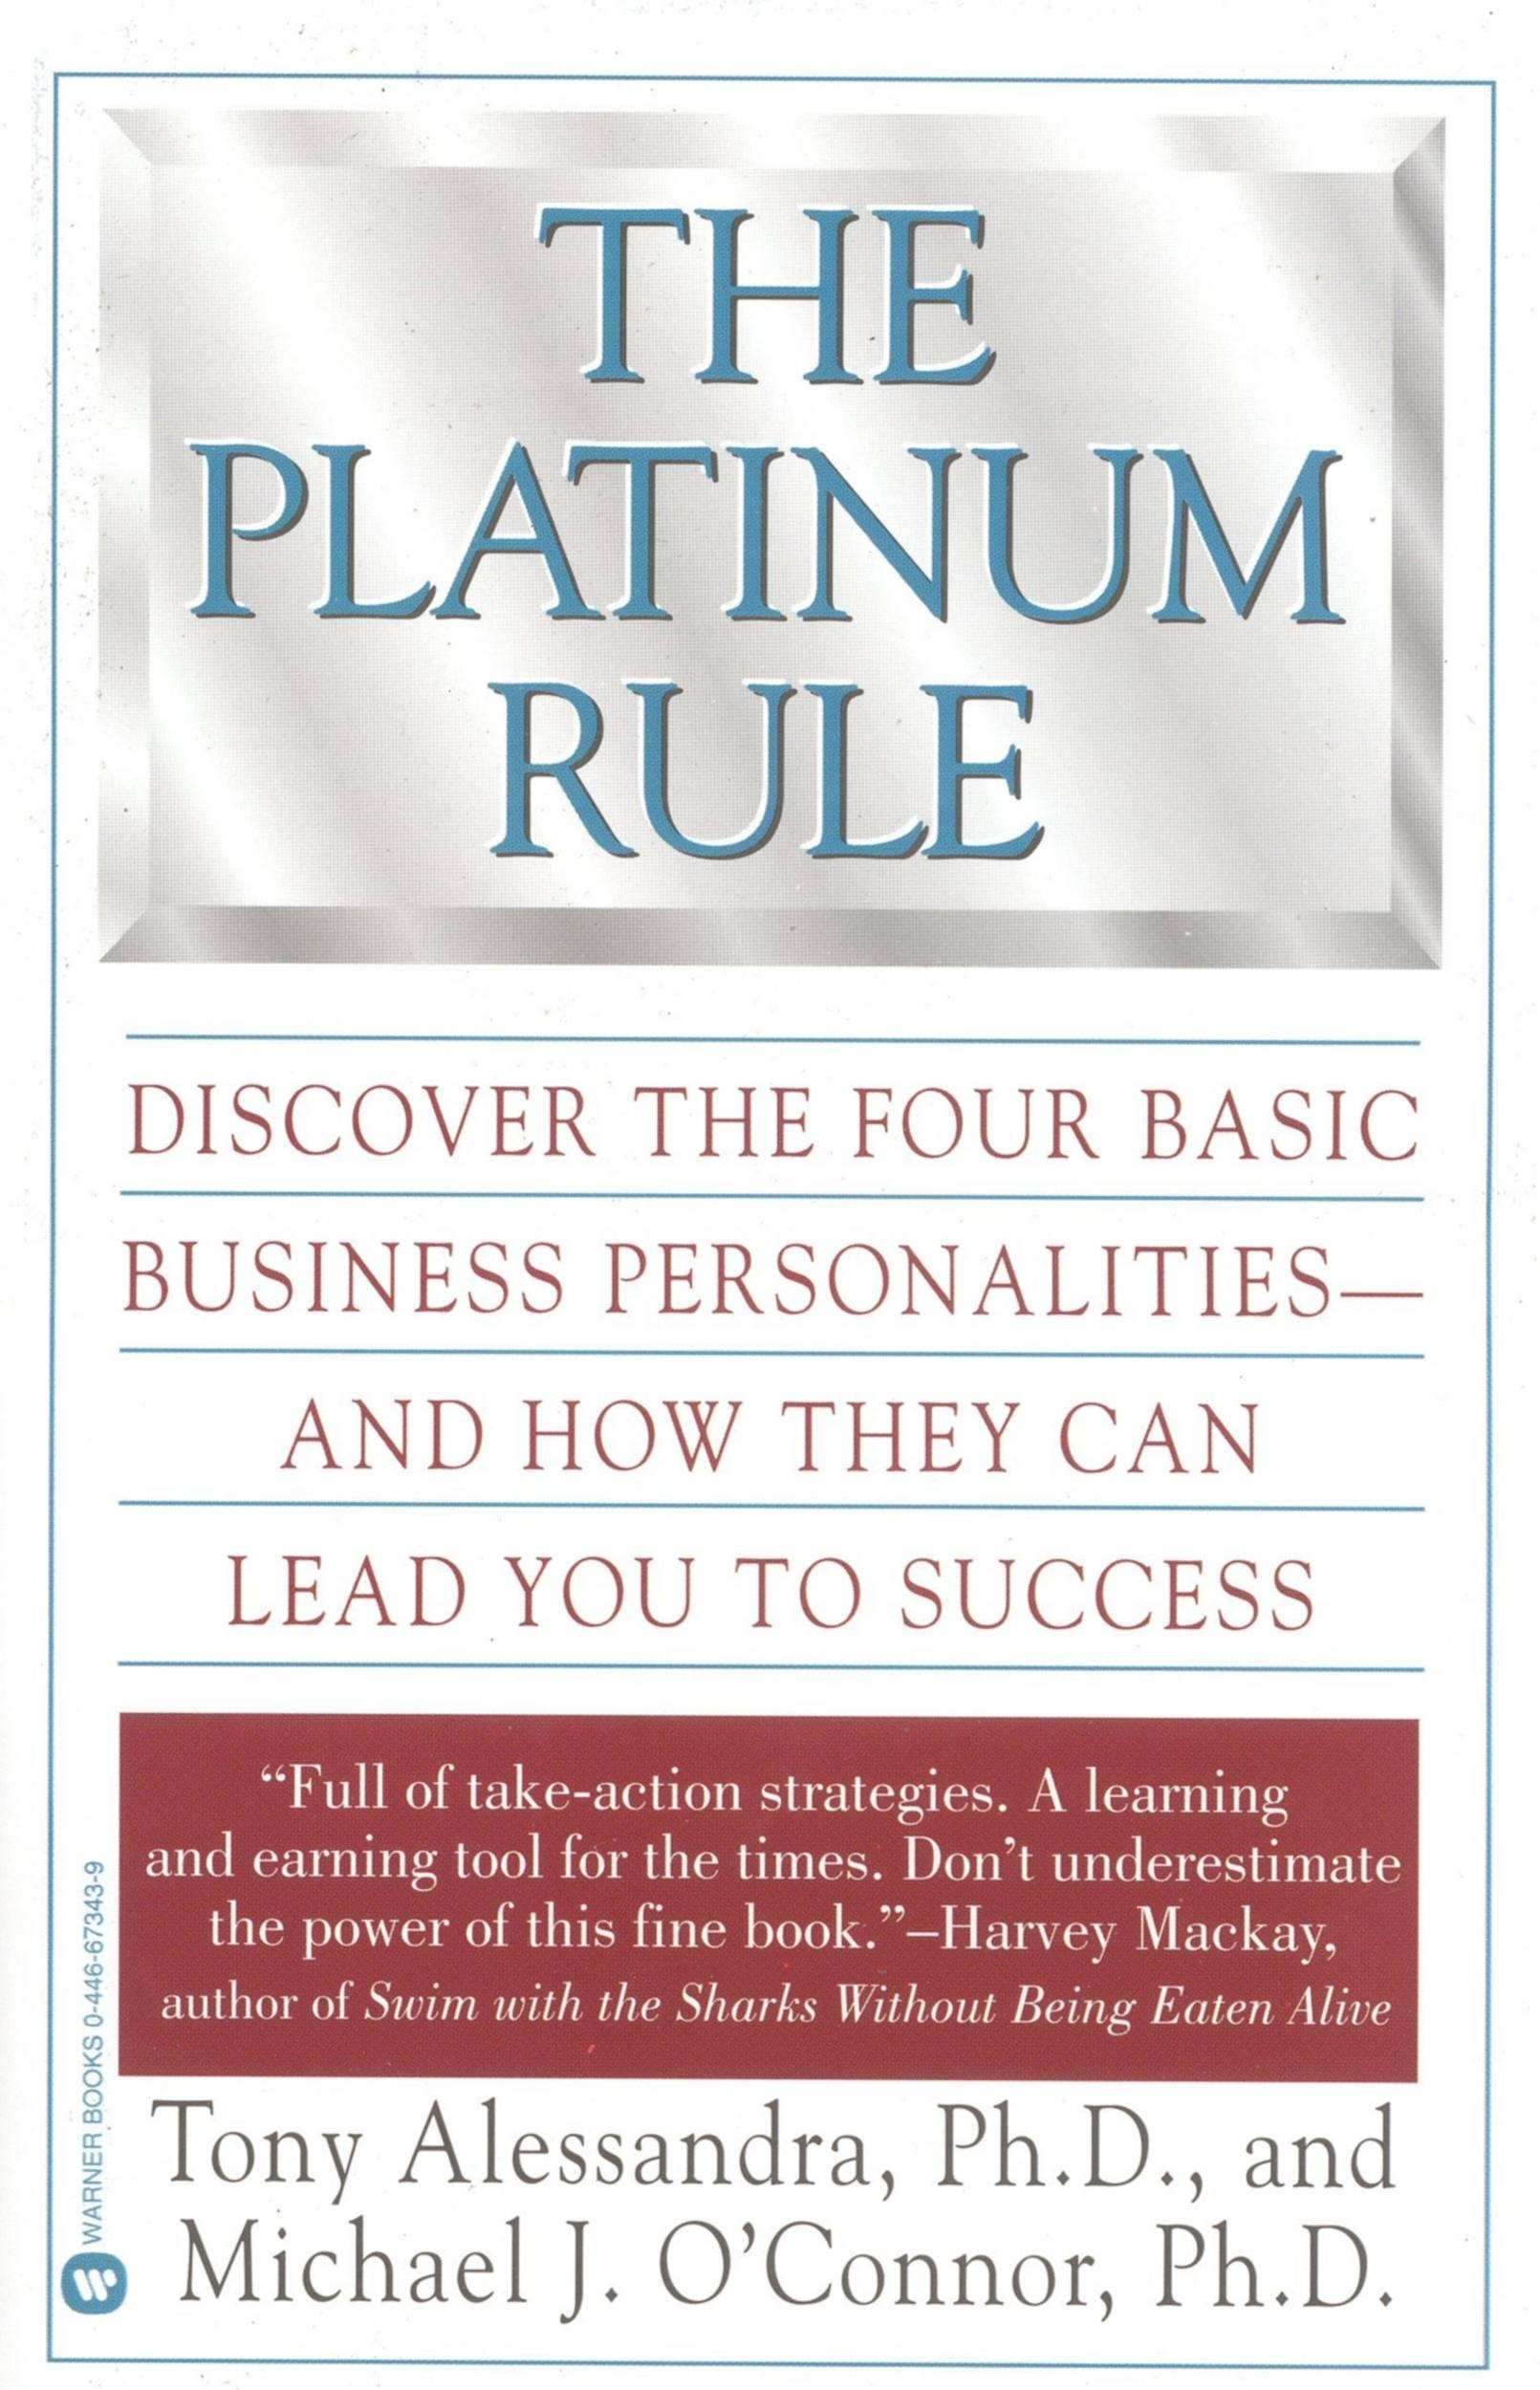 Platinum Rule, The